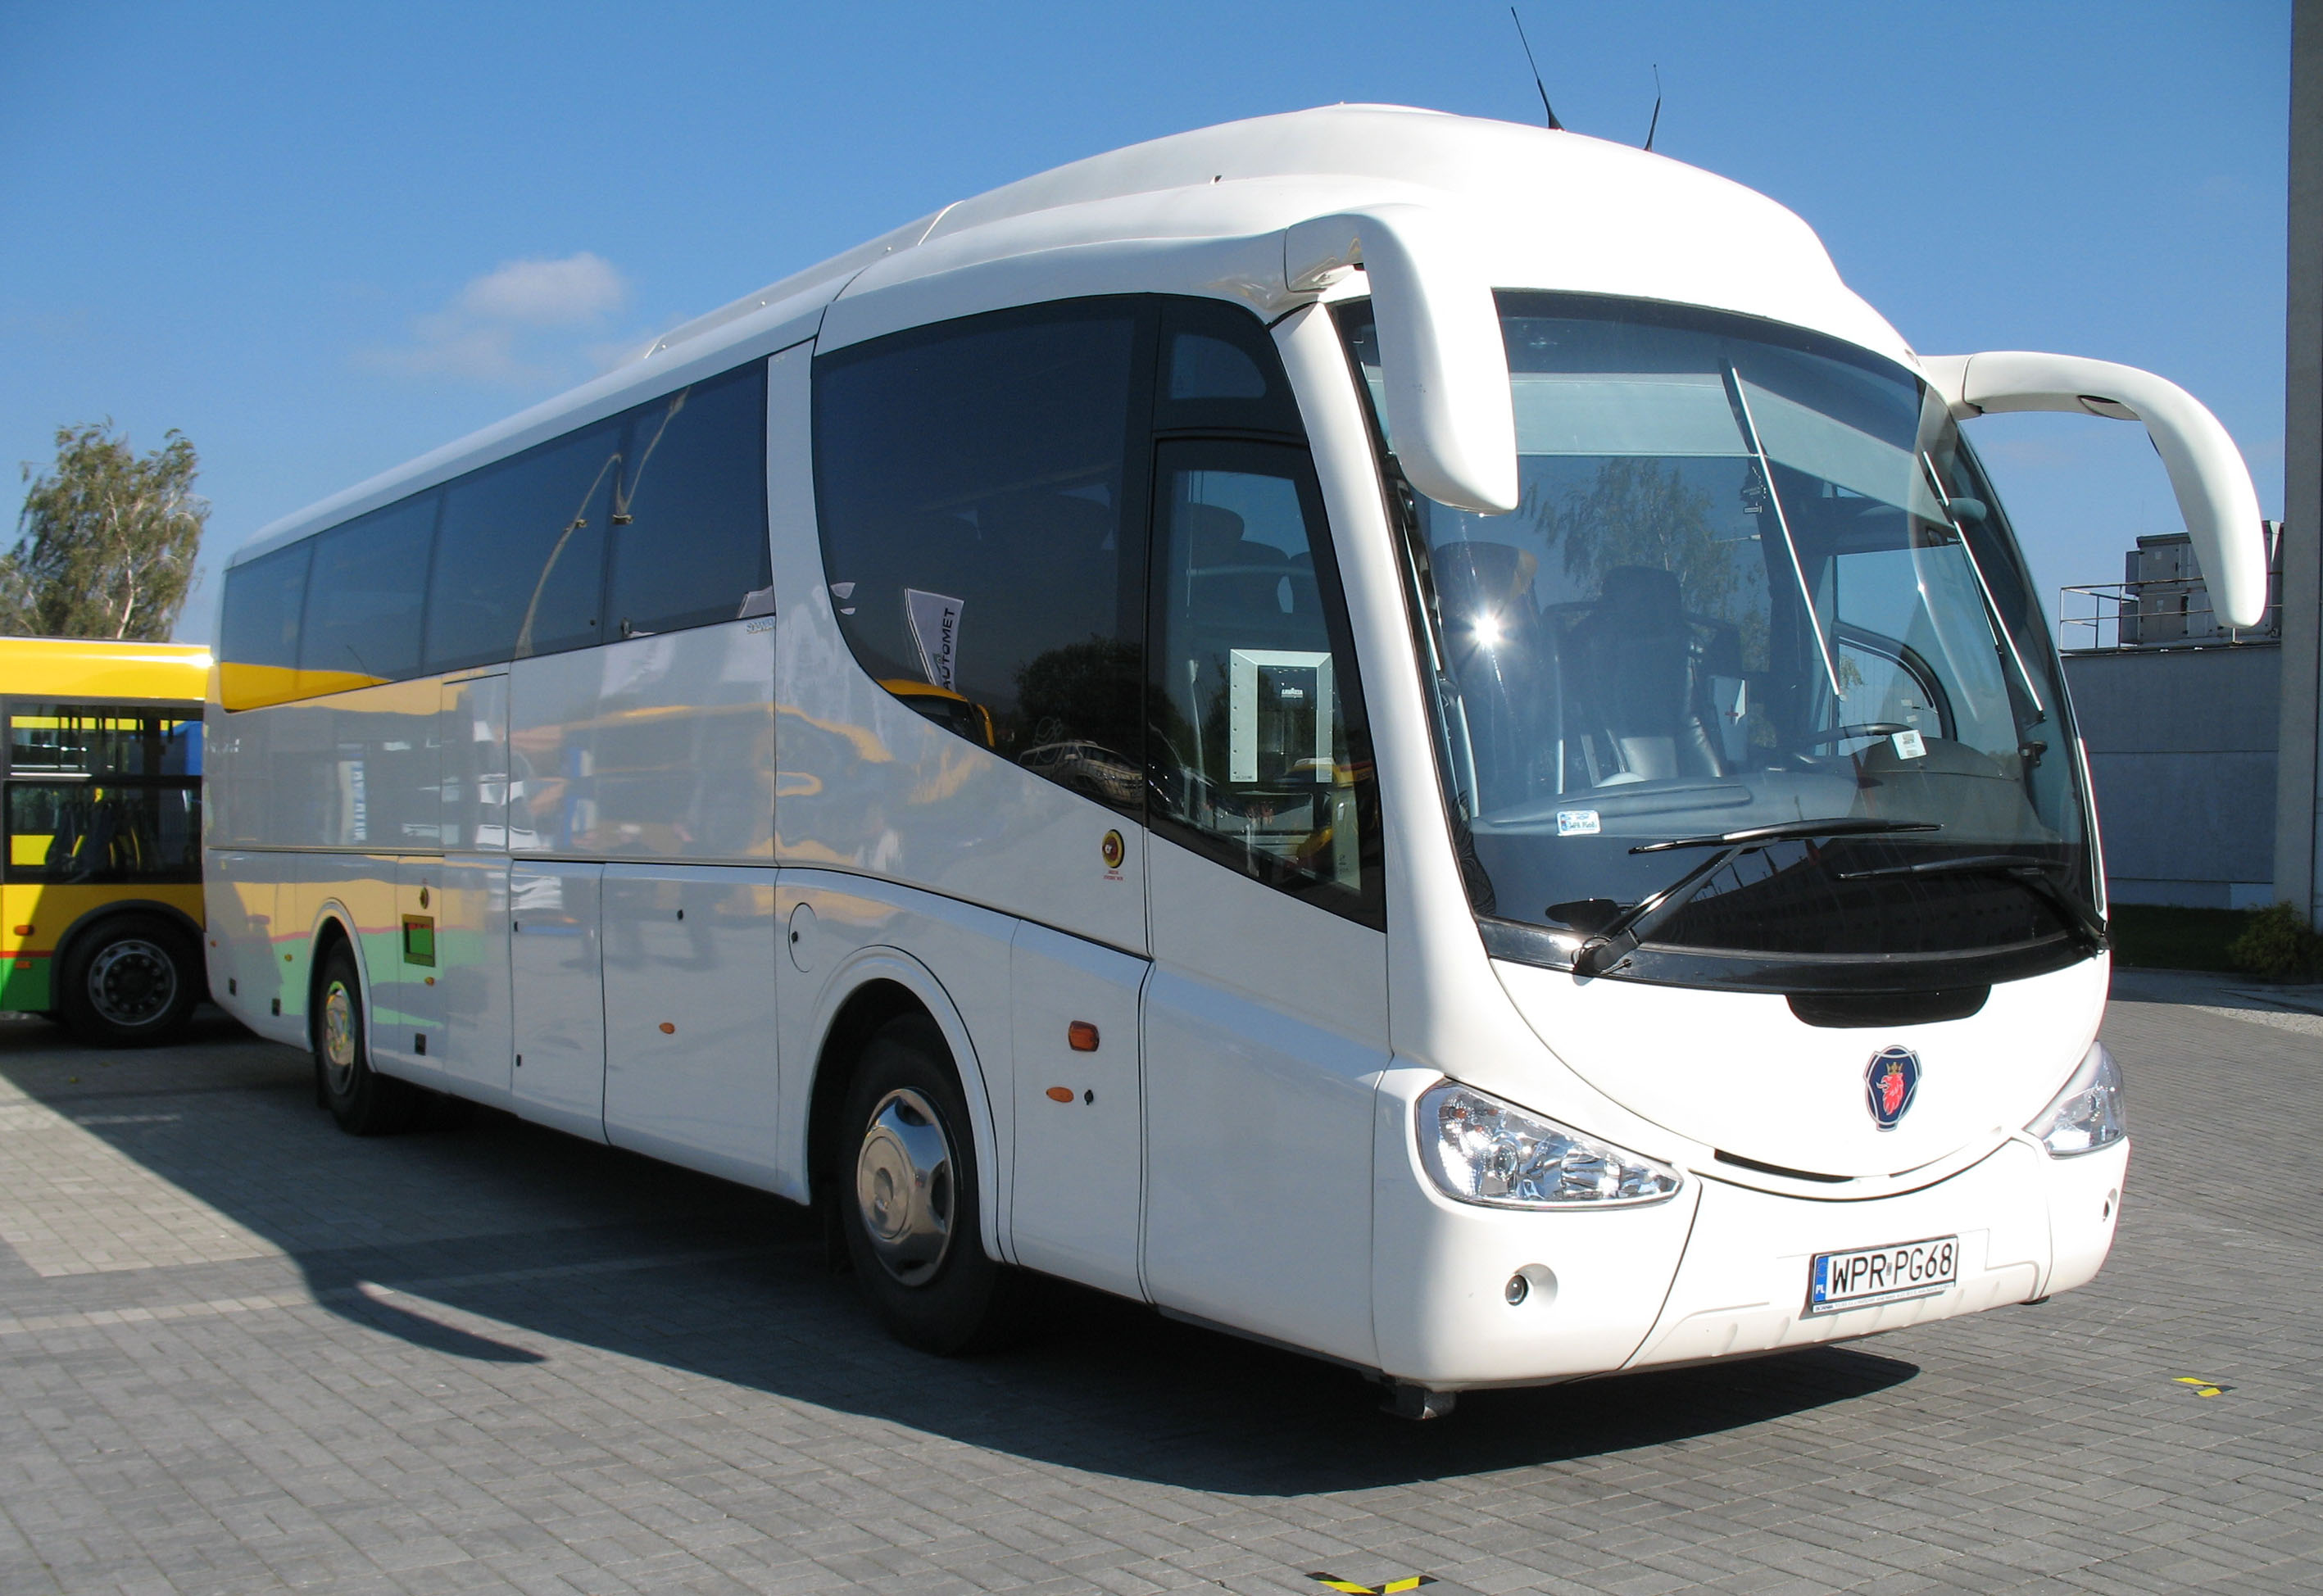 File:Scania-Irizar PB in Kielce.jpg - Wikimedia Commons